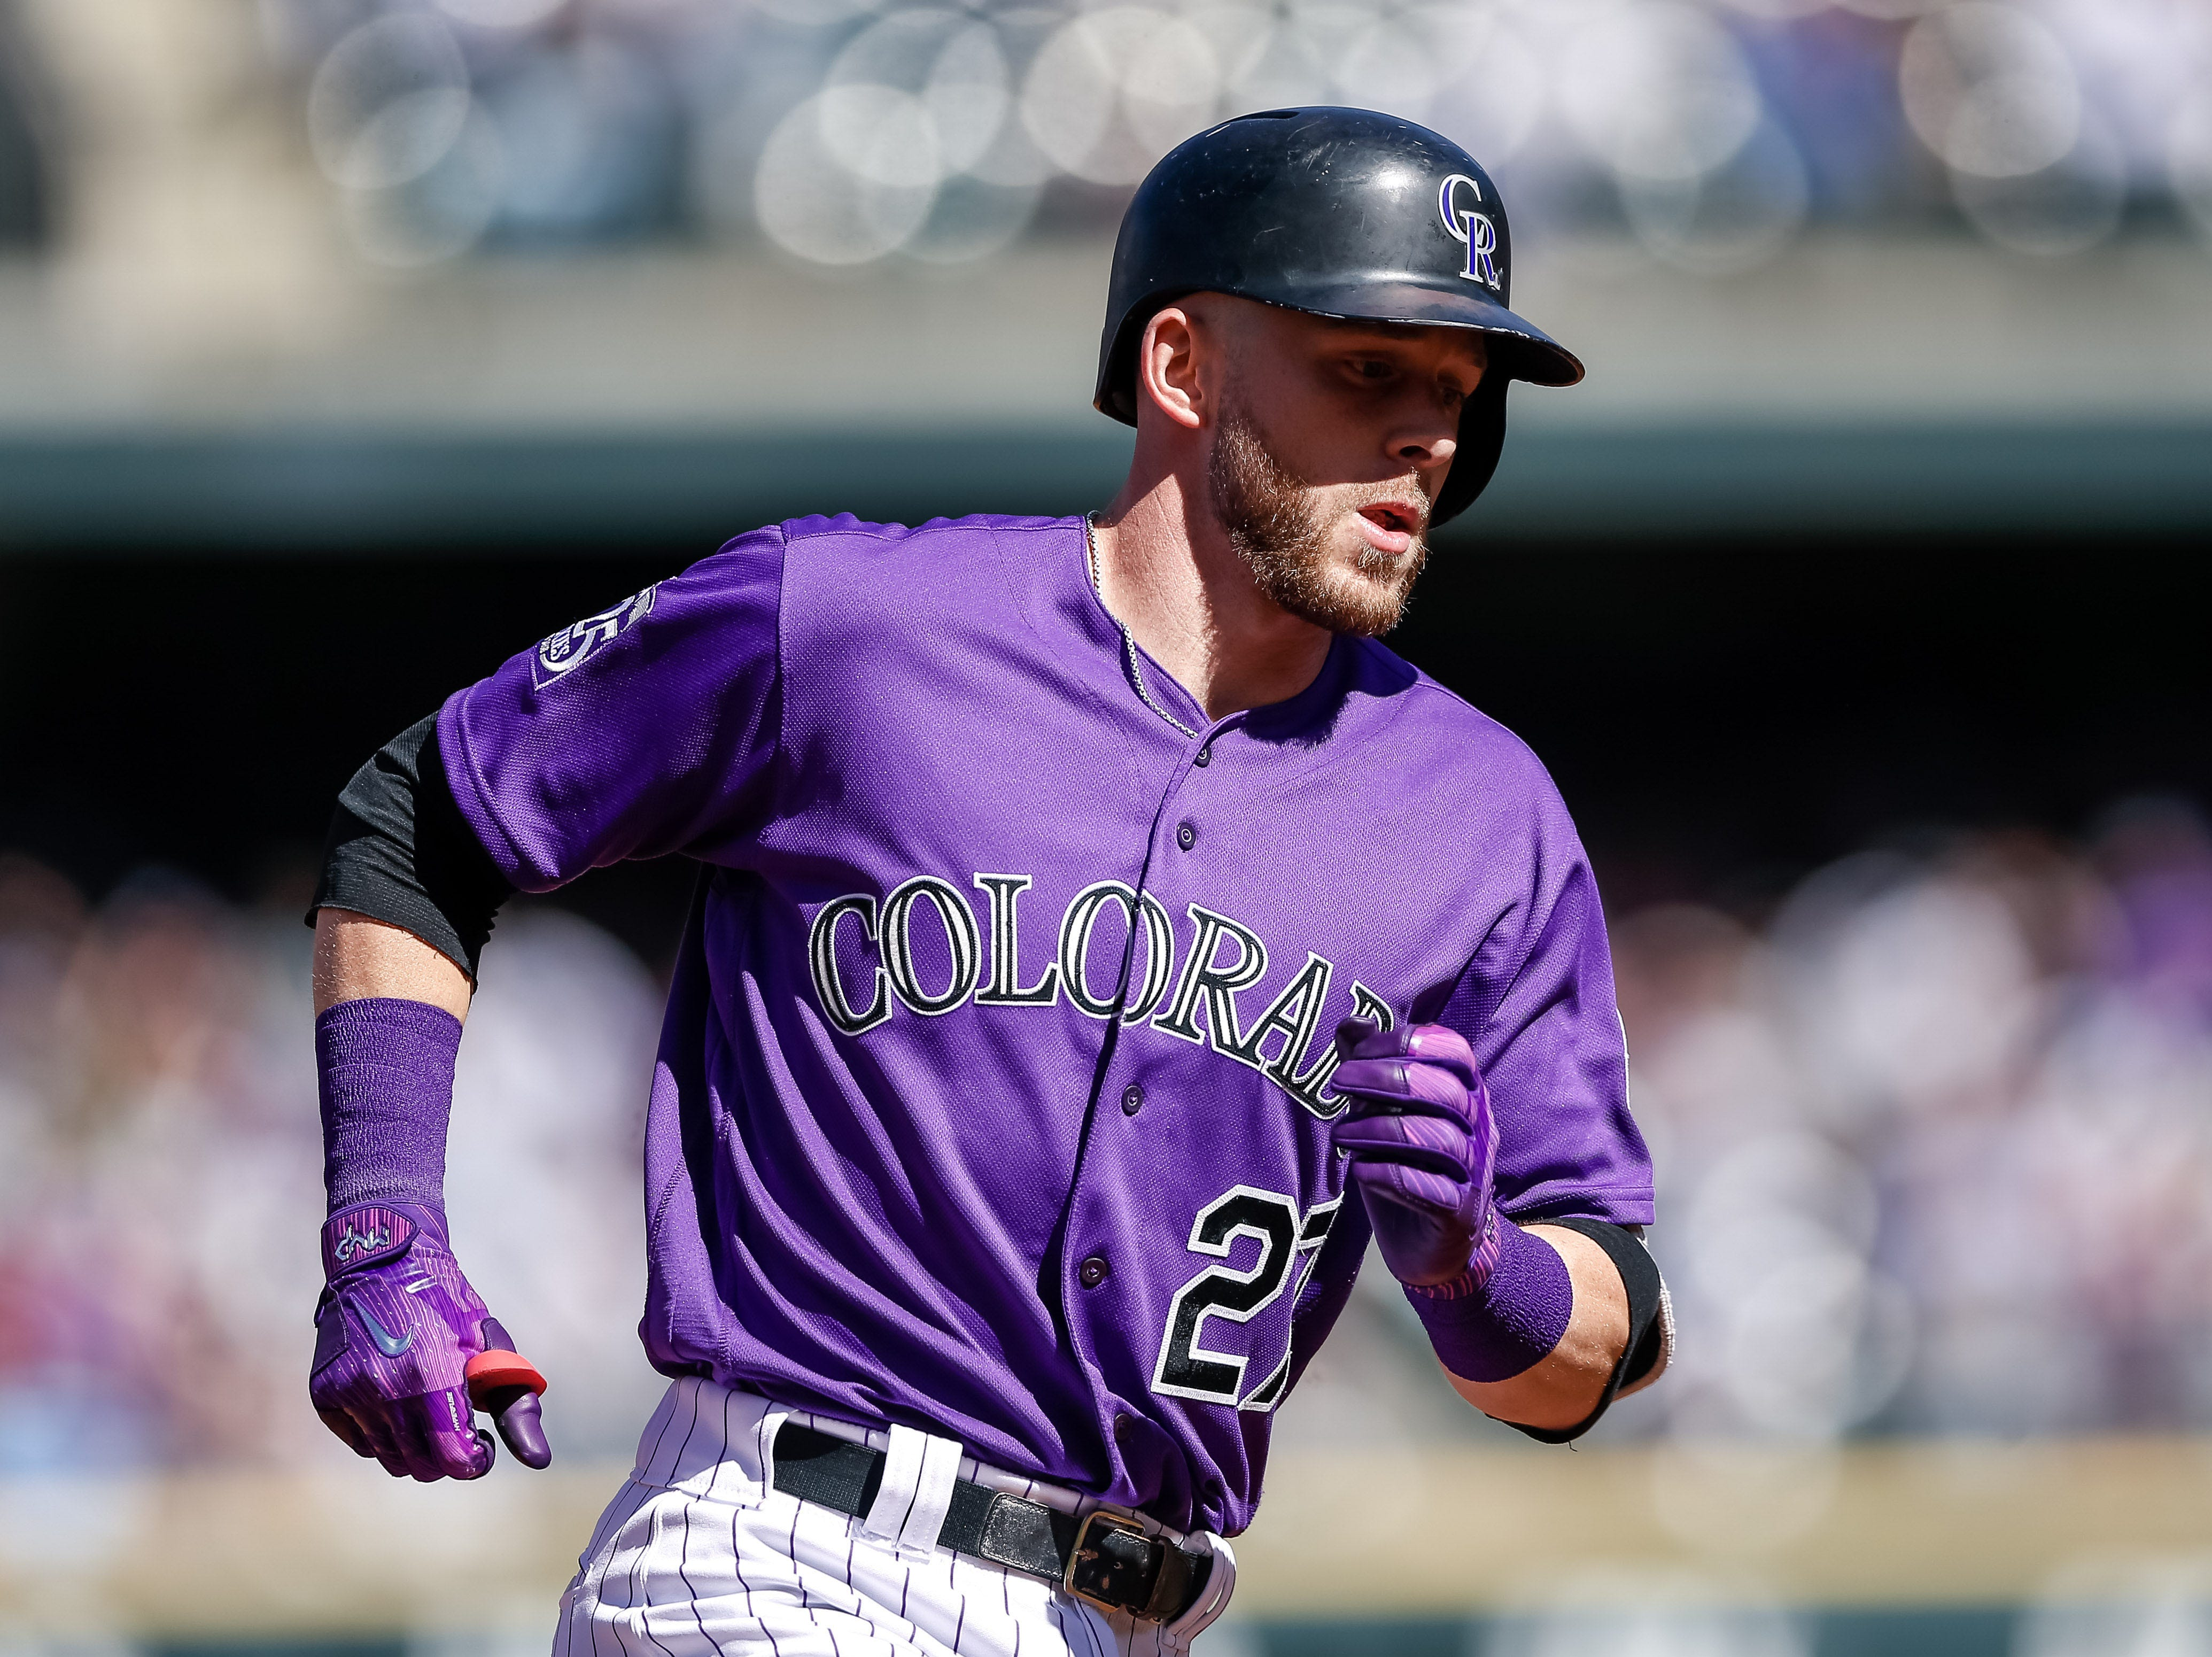 28. Trevor Story, Colorado Rockies shortstop.